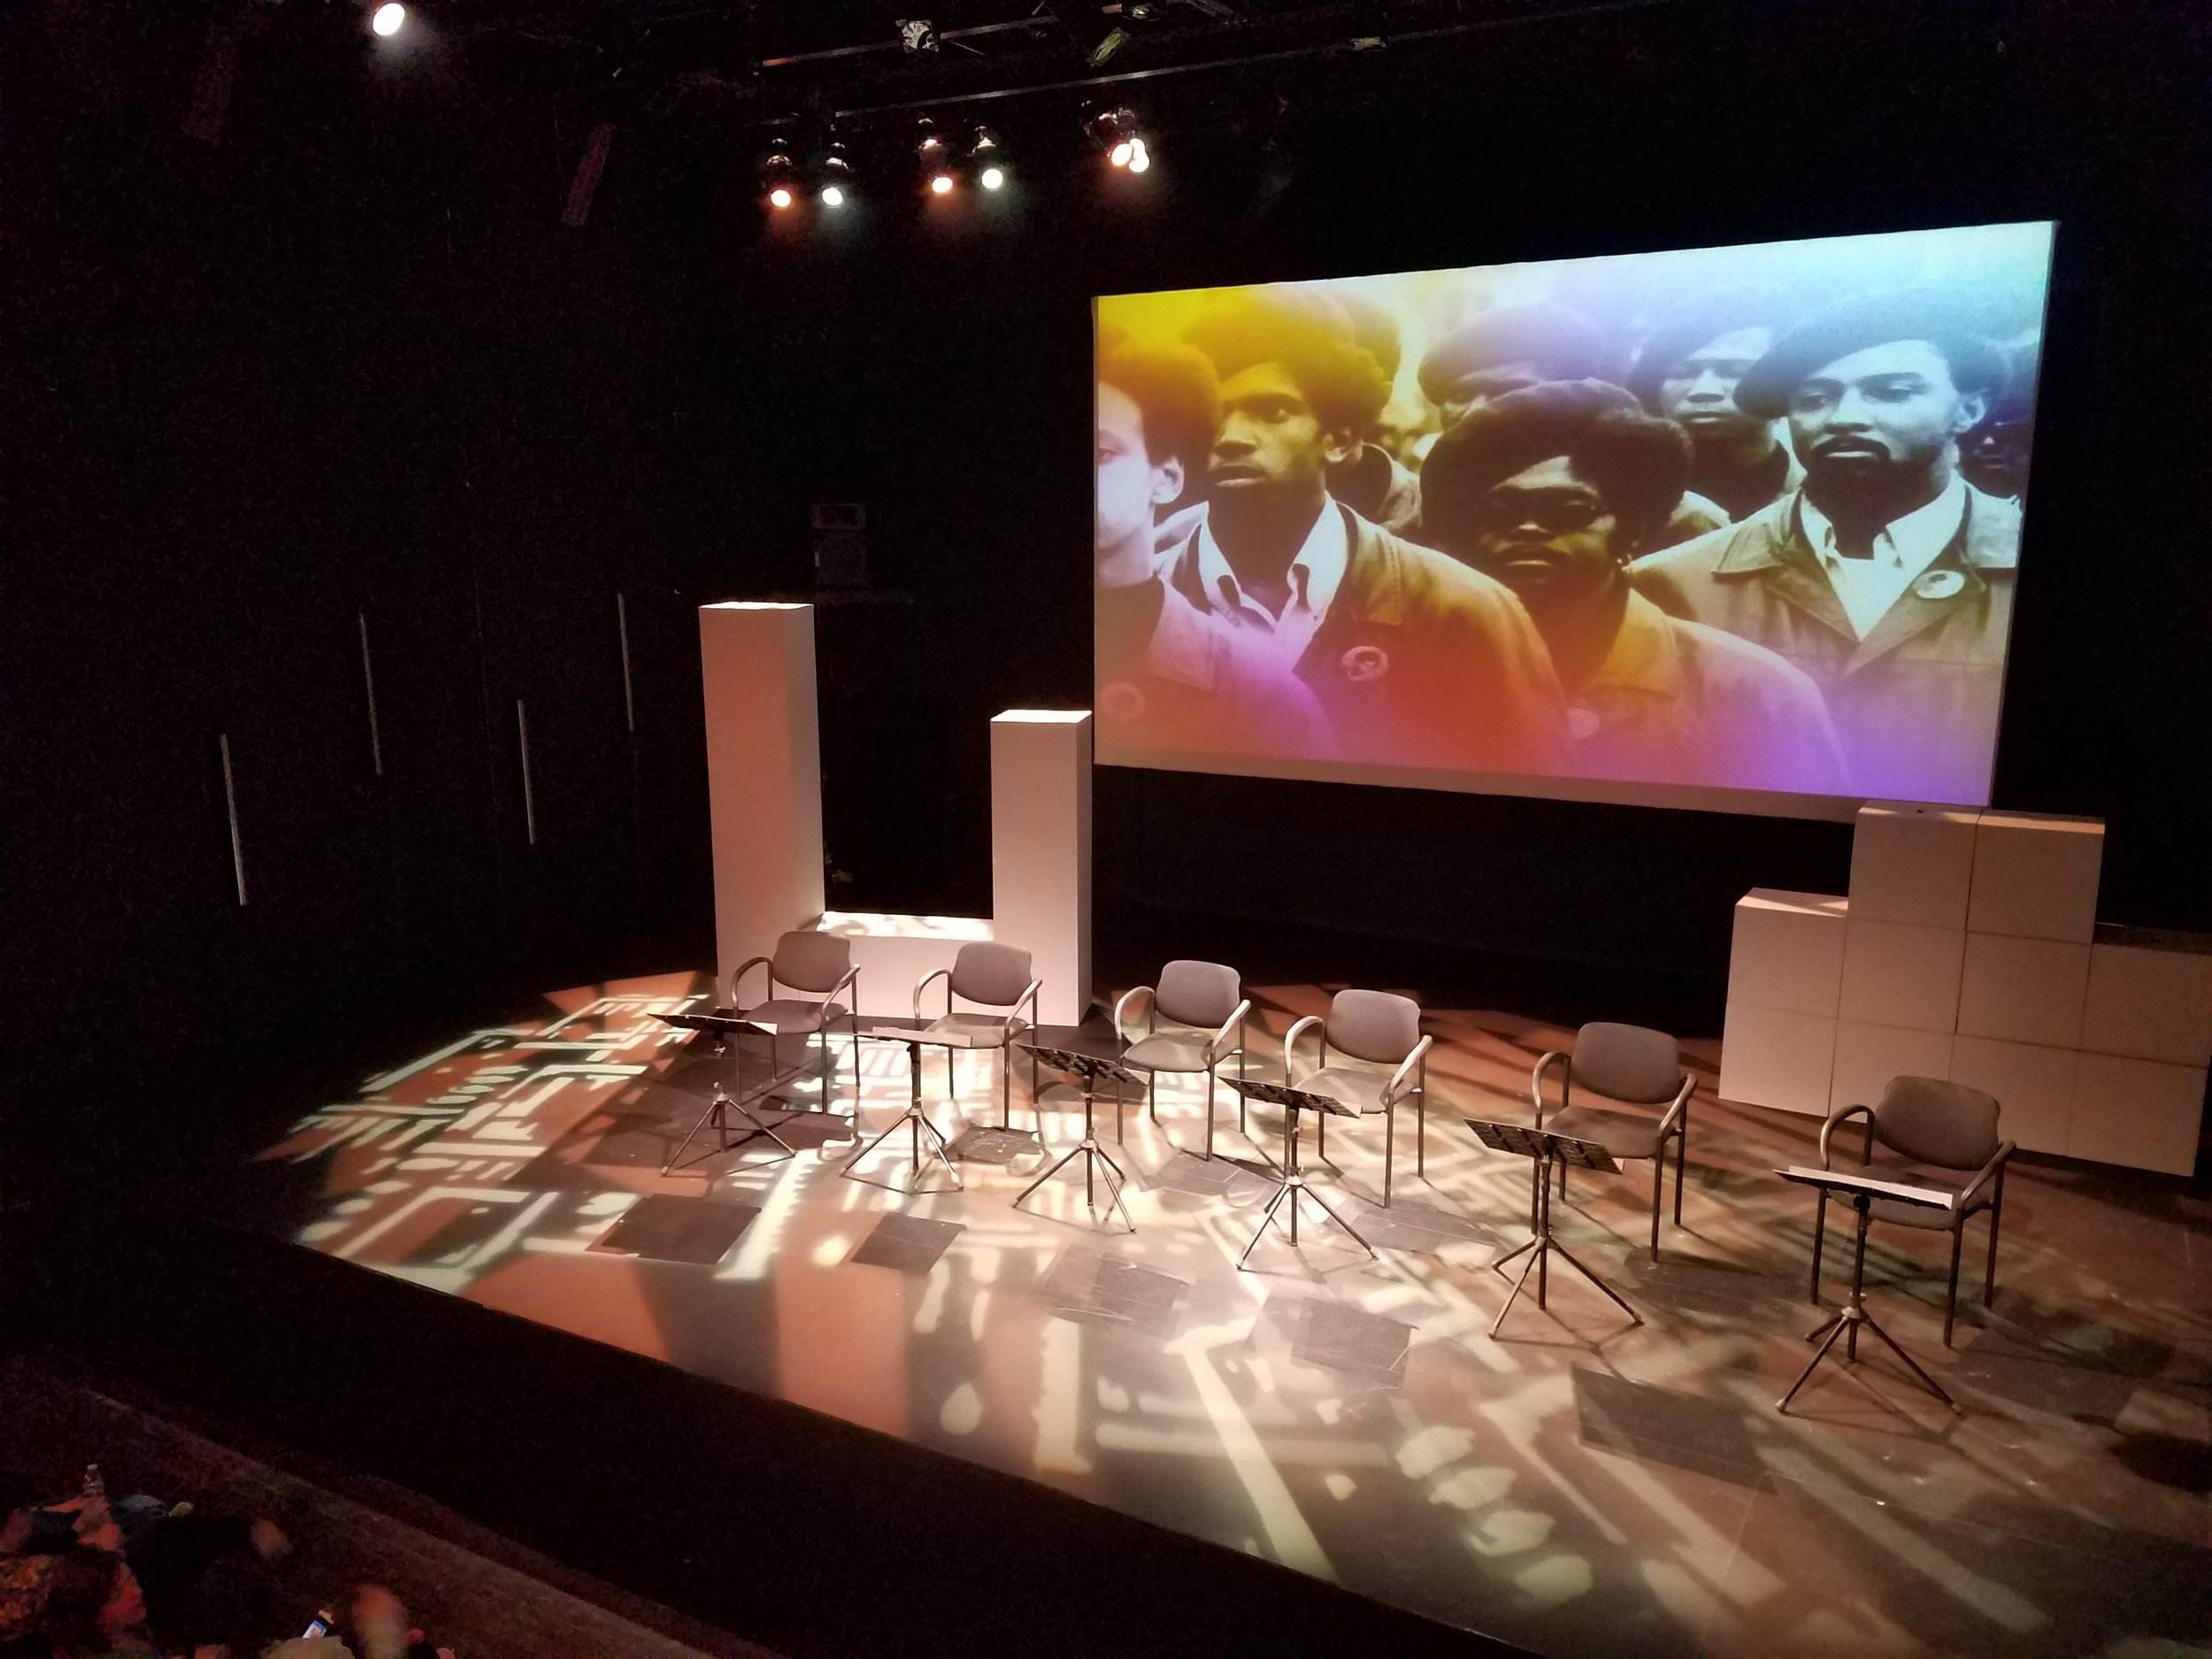 Stage with empty chairs and projected backdrop